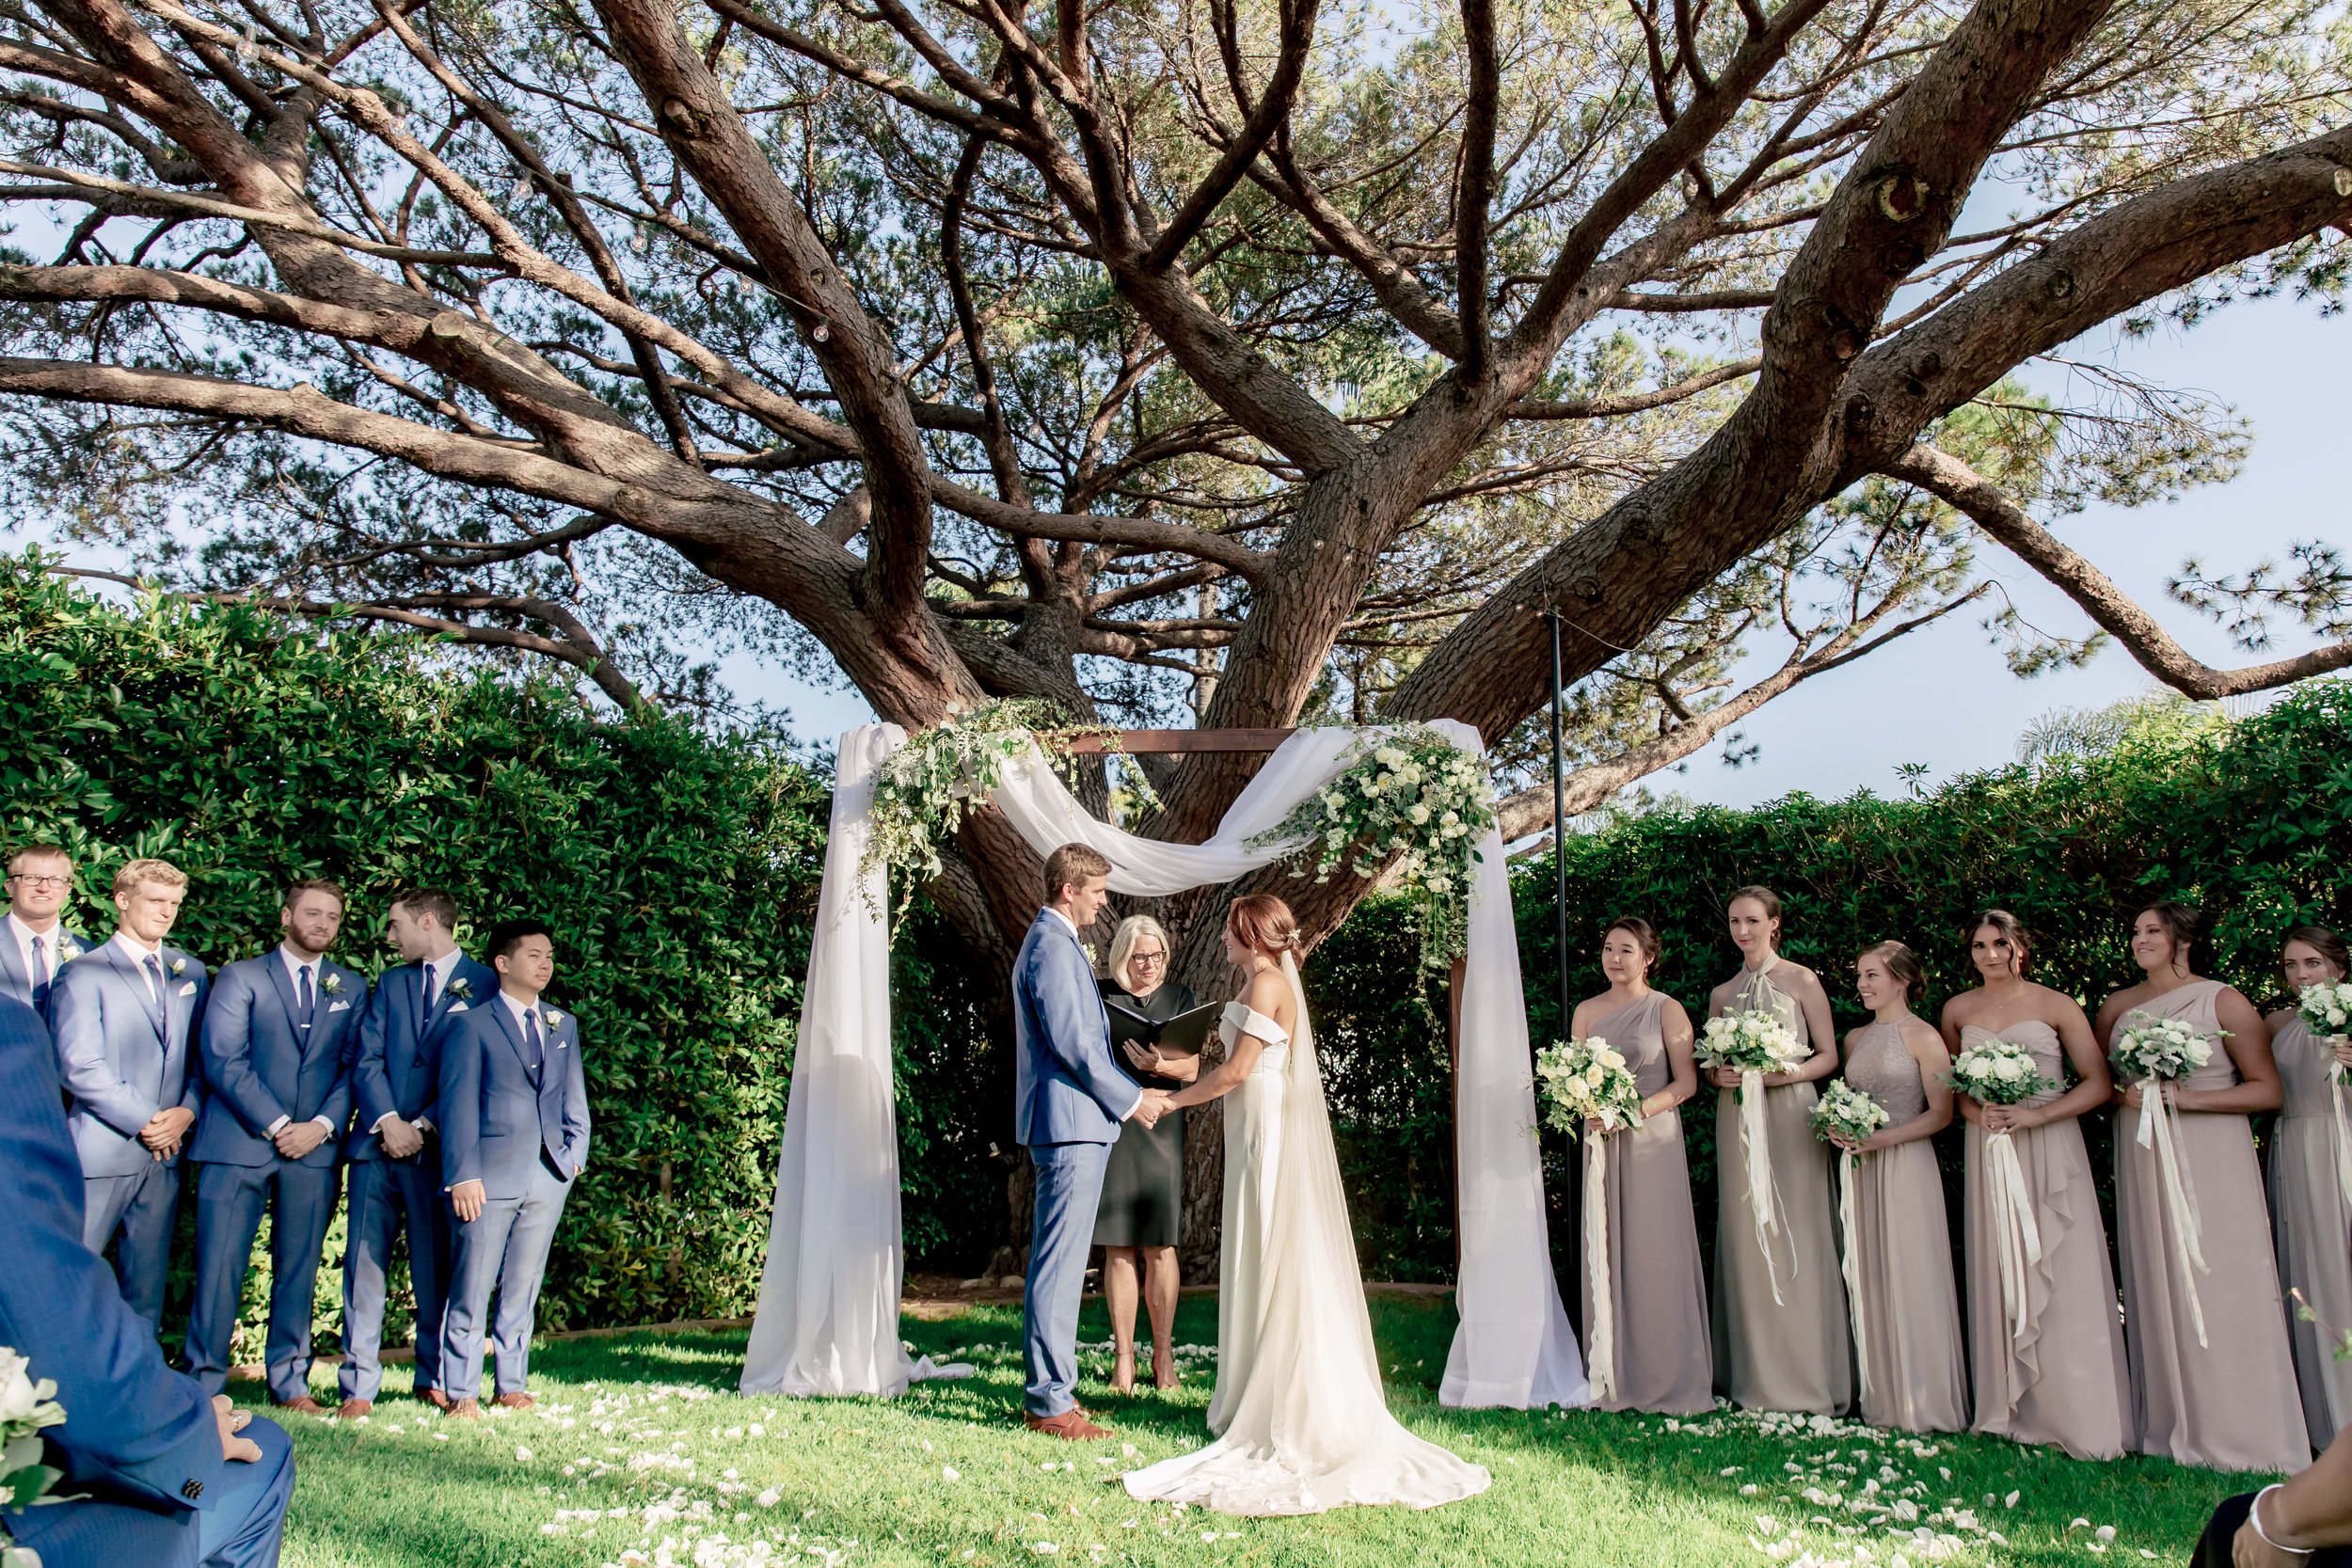 www.santabarbarawedding.com | Rewind Photography | Riviera Mansion | Alegria by Design | Margaret Joan Florals | Ceremonies by Nanette | The Ceremony